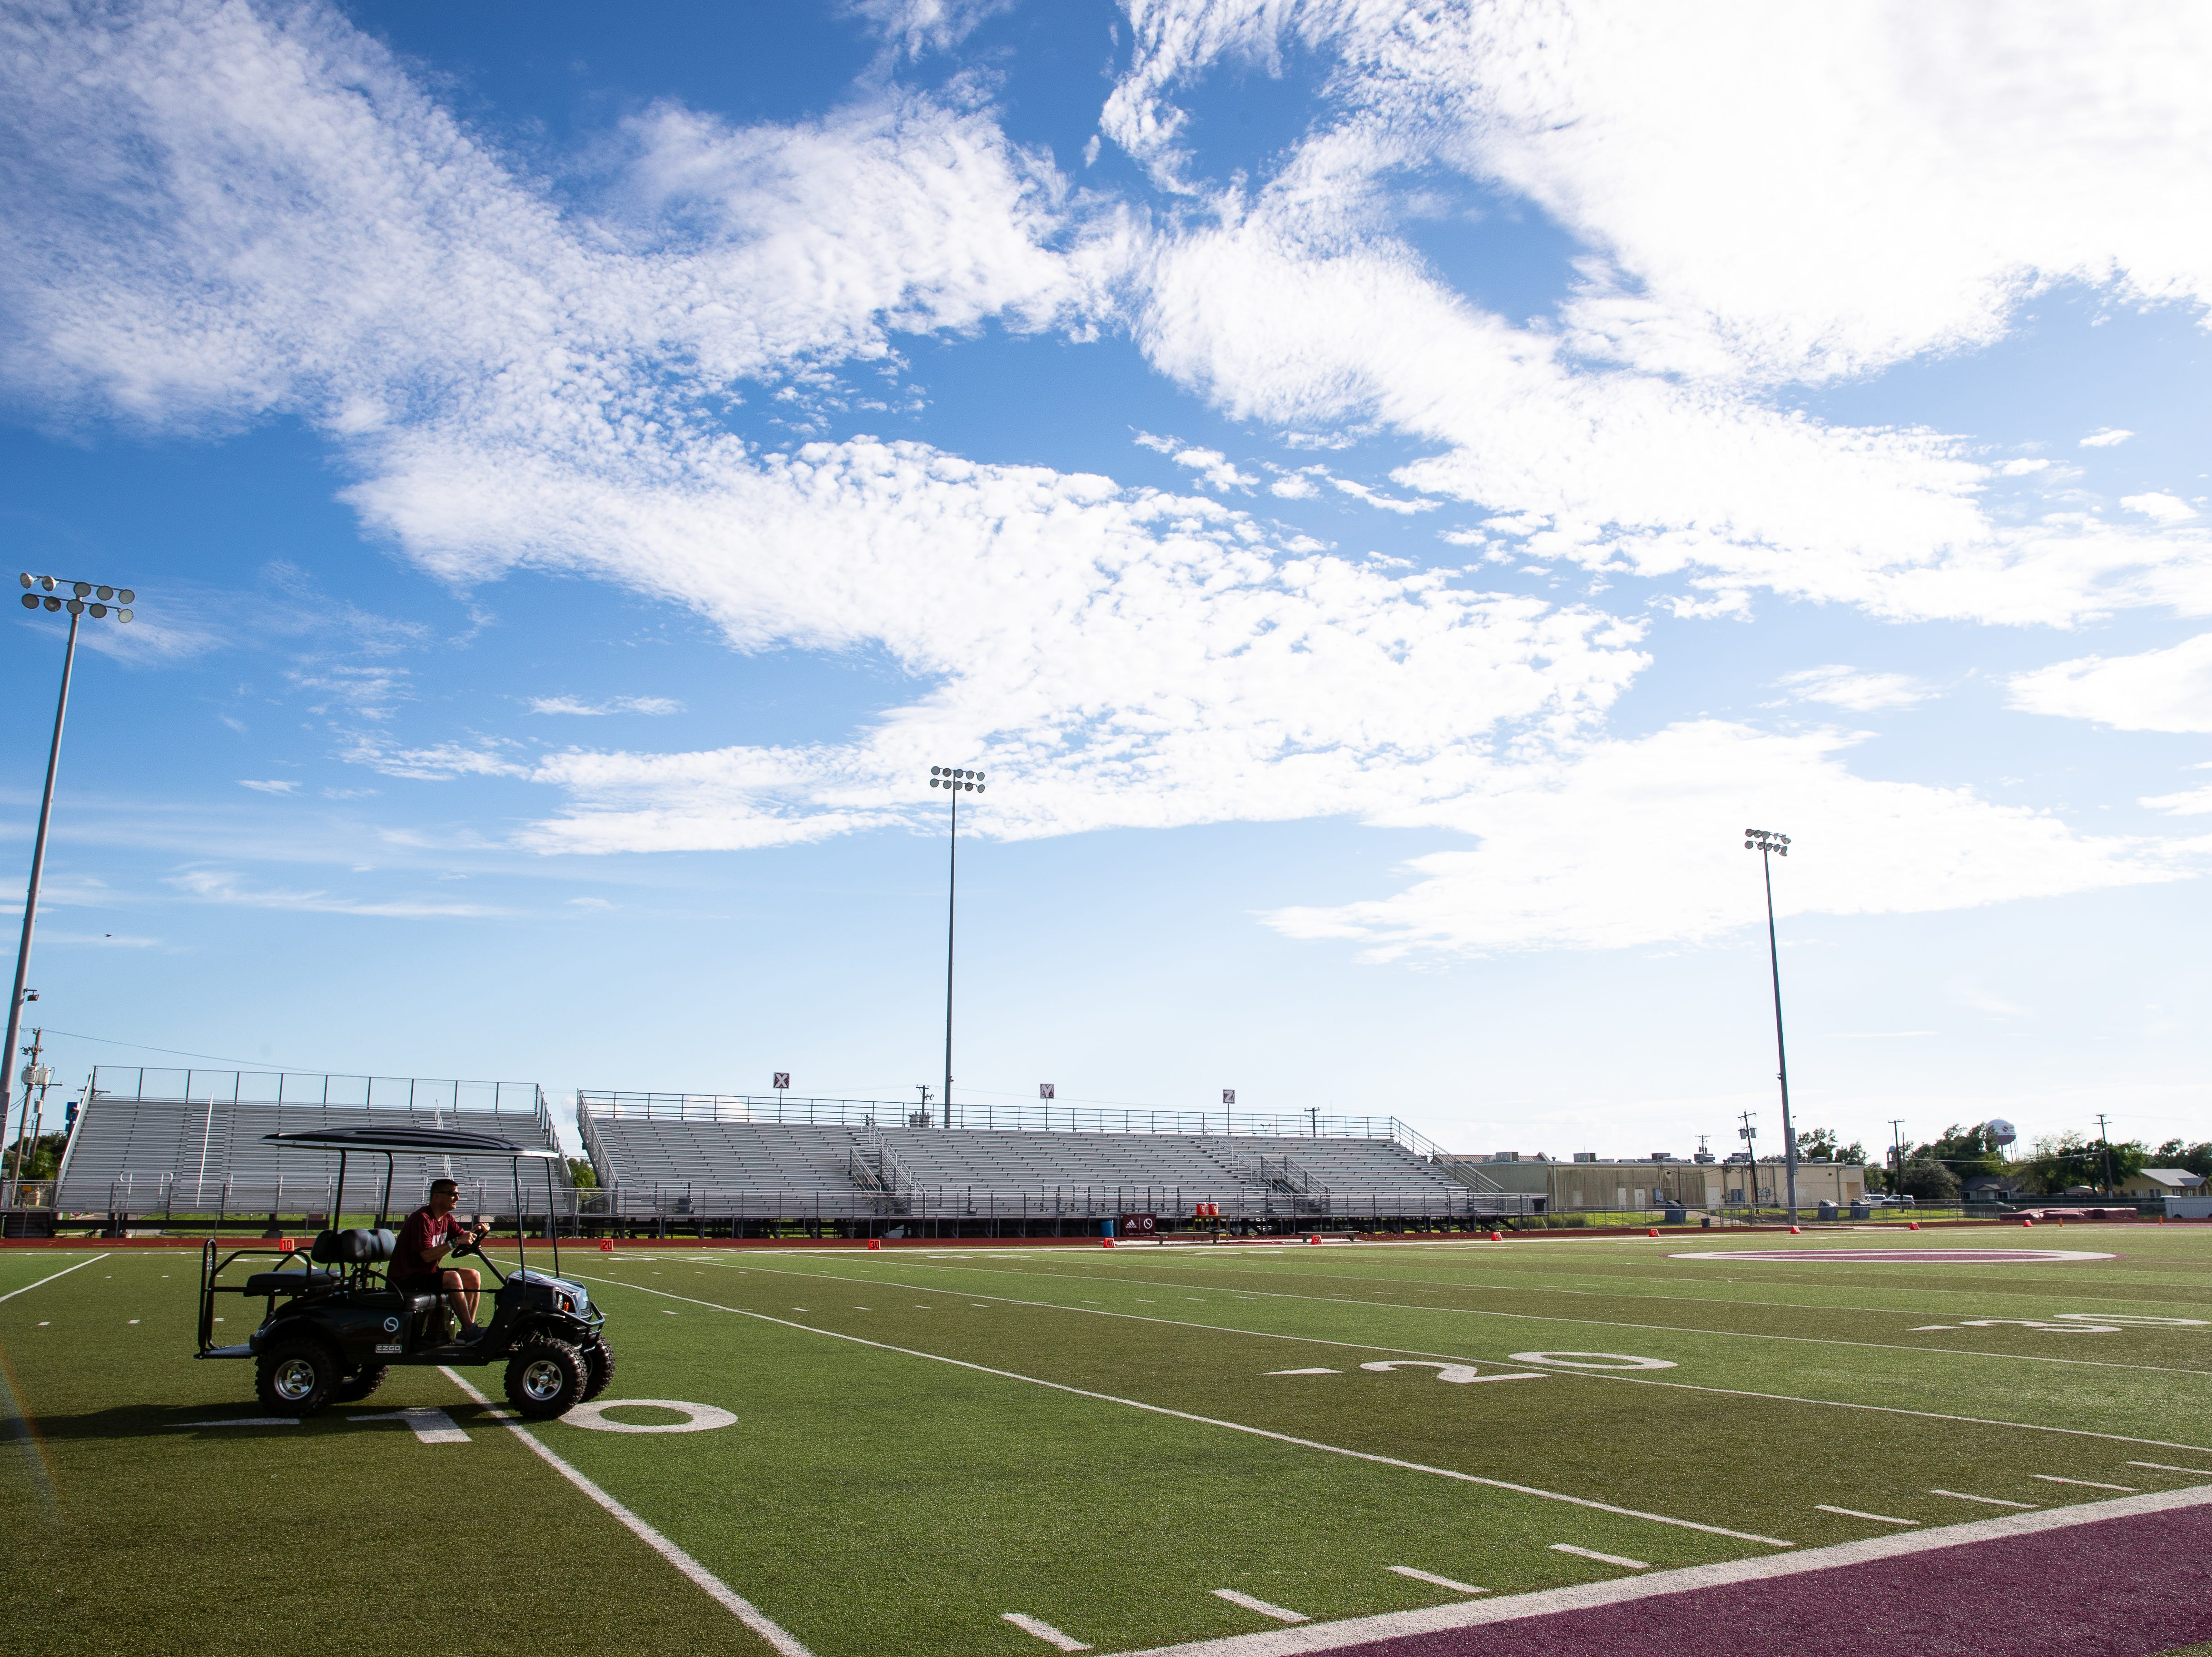 Tom Allen head coach of the Sinton football drives his cart across the field after his players leave at the end of practice at Sinton High School on Tuesday, Sept. 18, 2018. Allen is suffering from a rare neurological disease that has him in a cart during games and practices